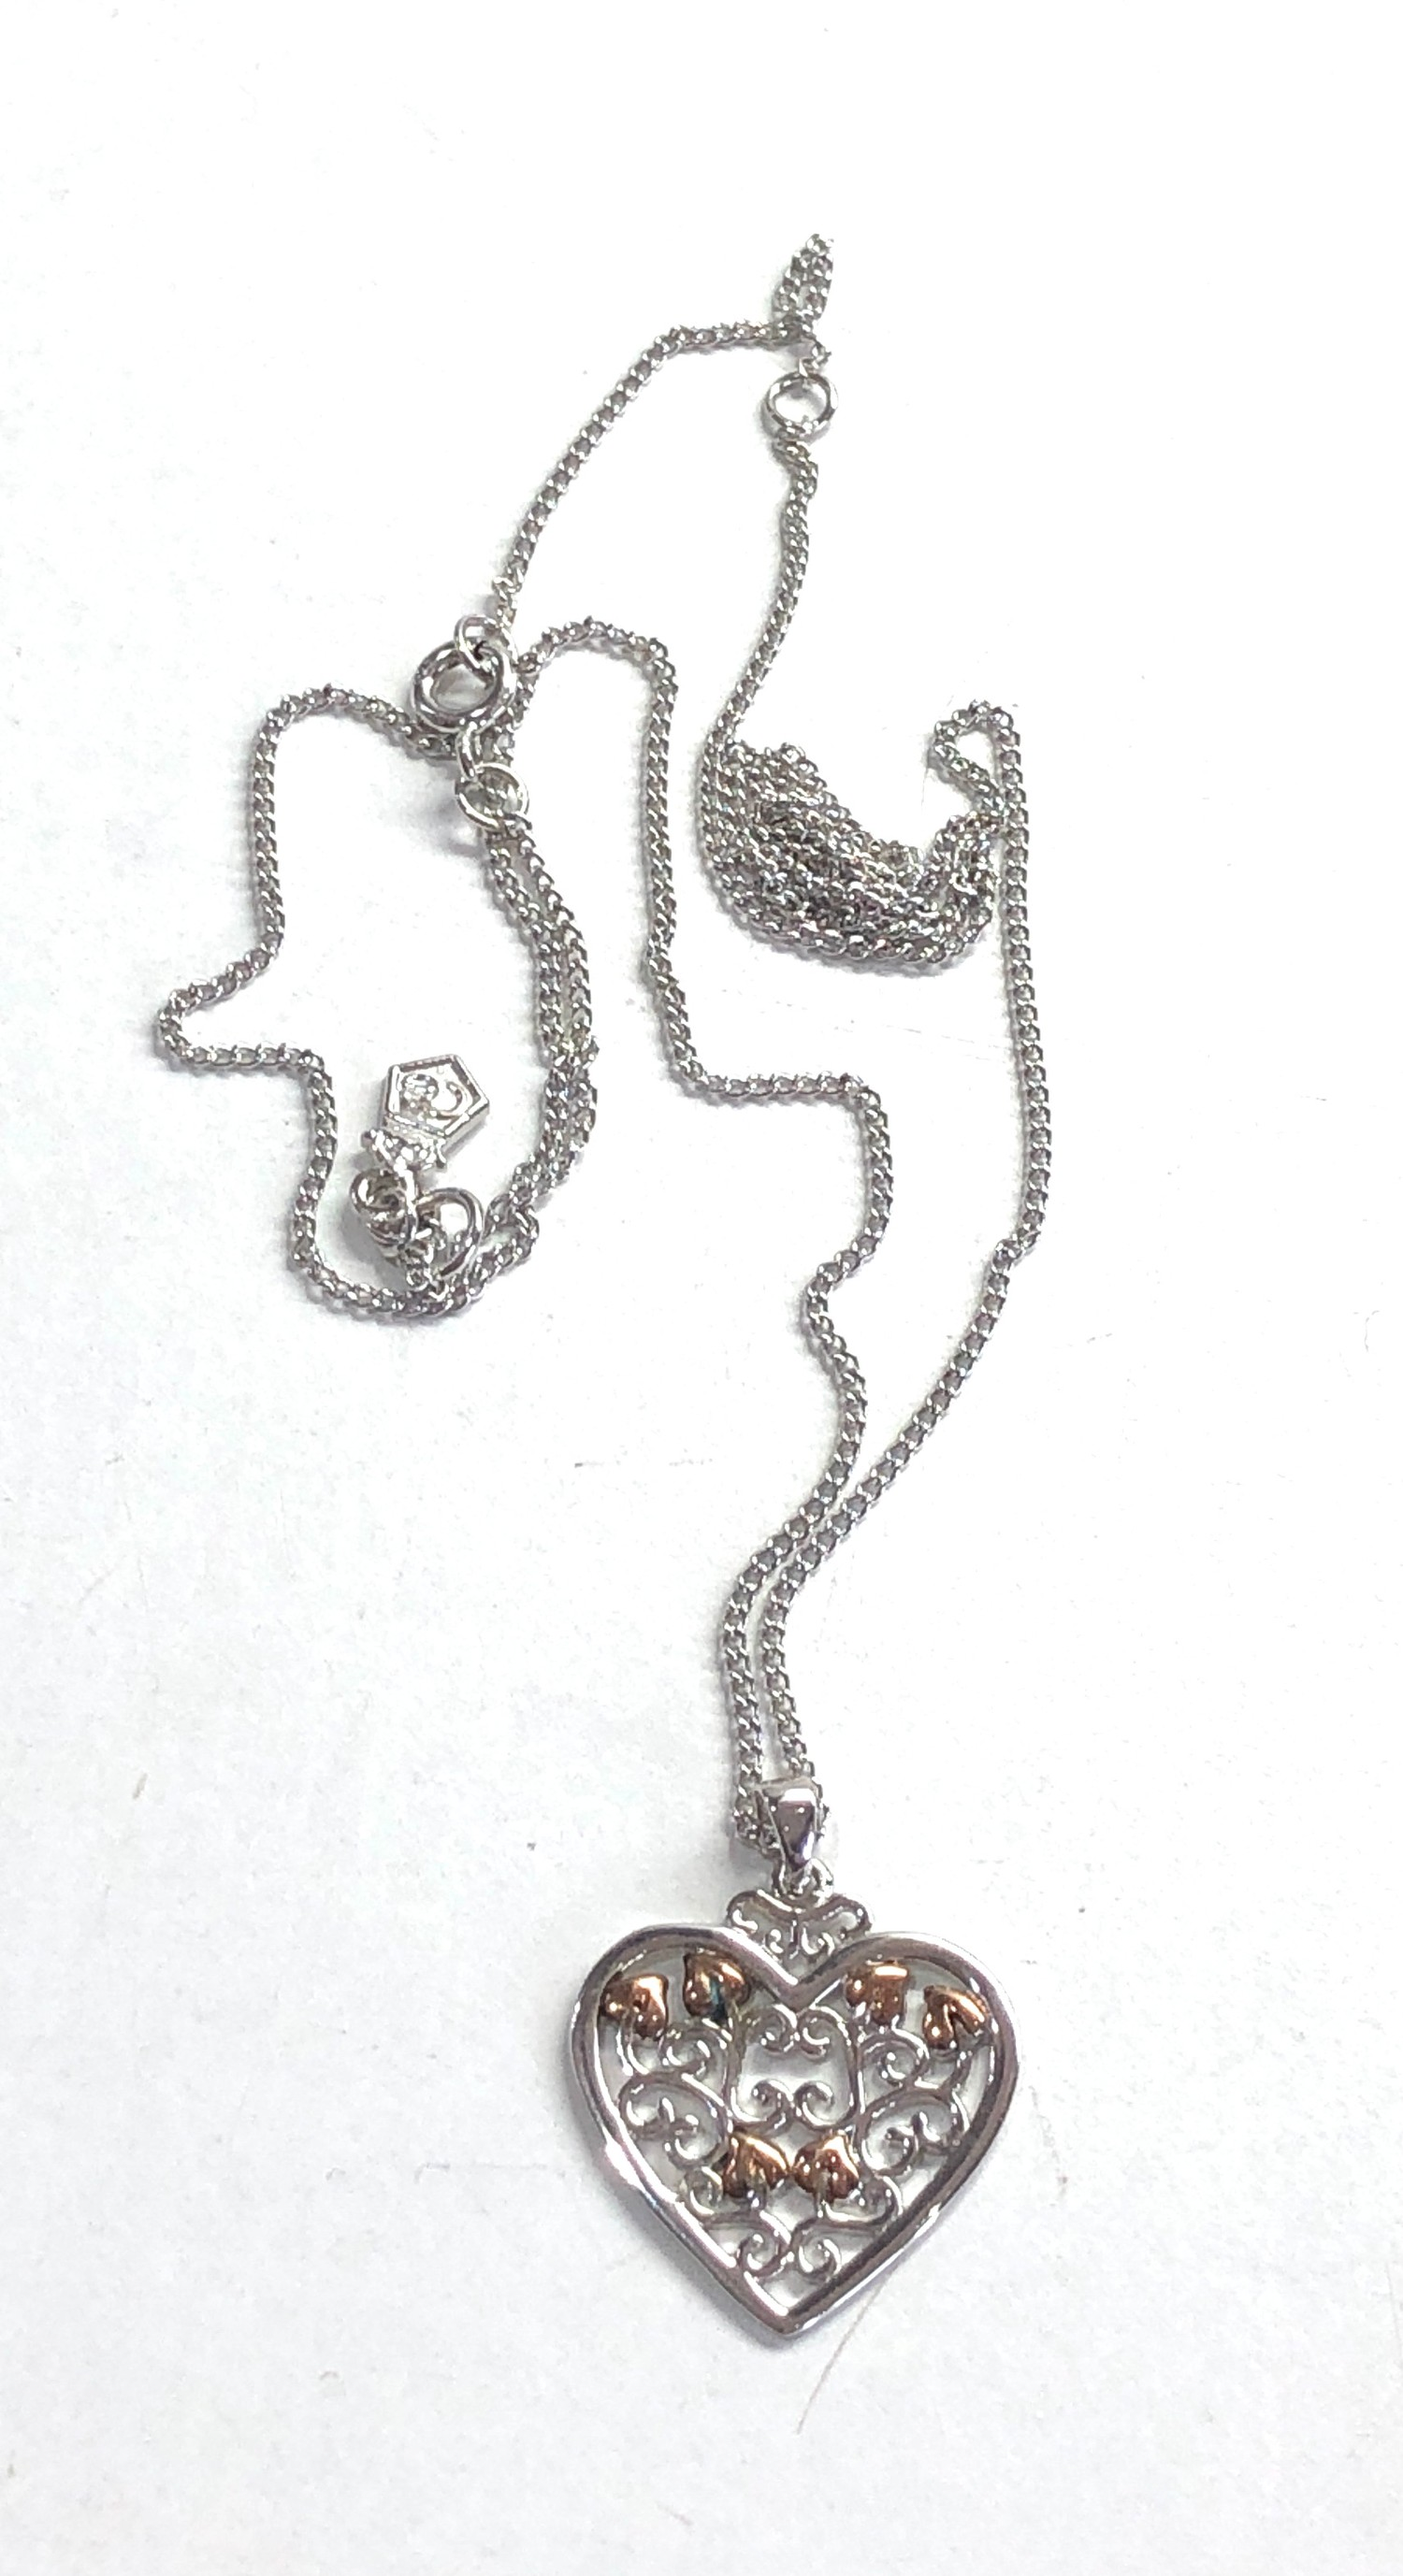 Clogau silver heart pendant and chain